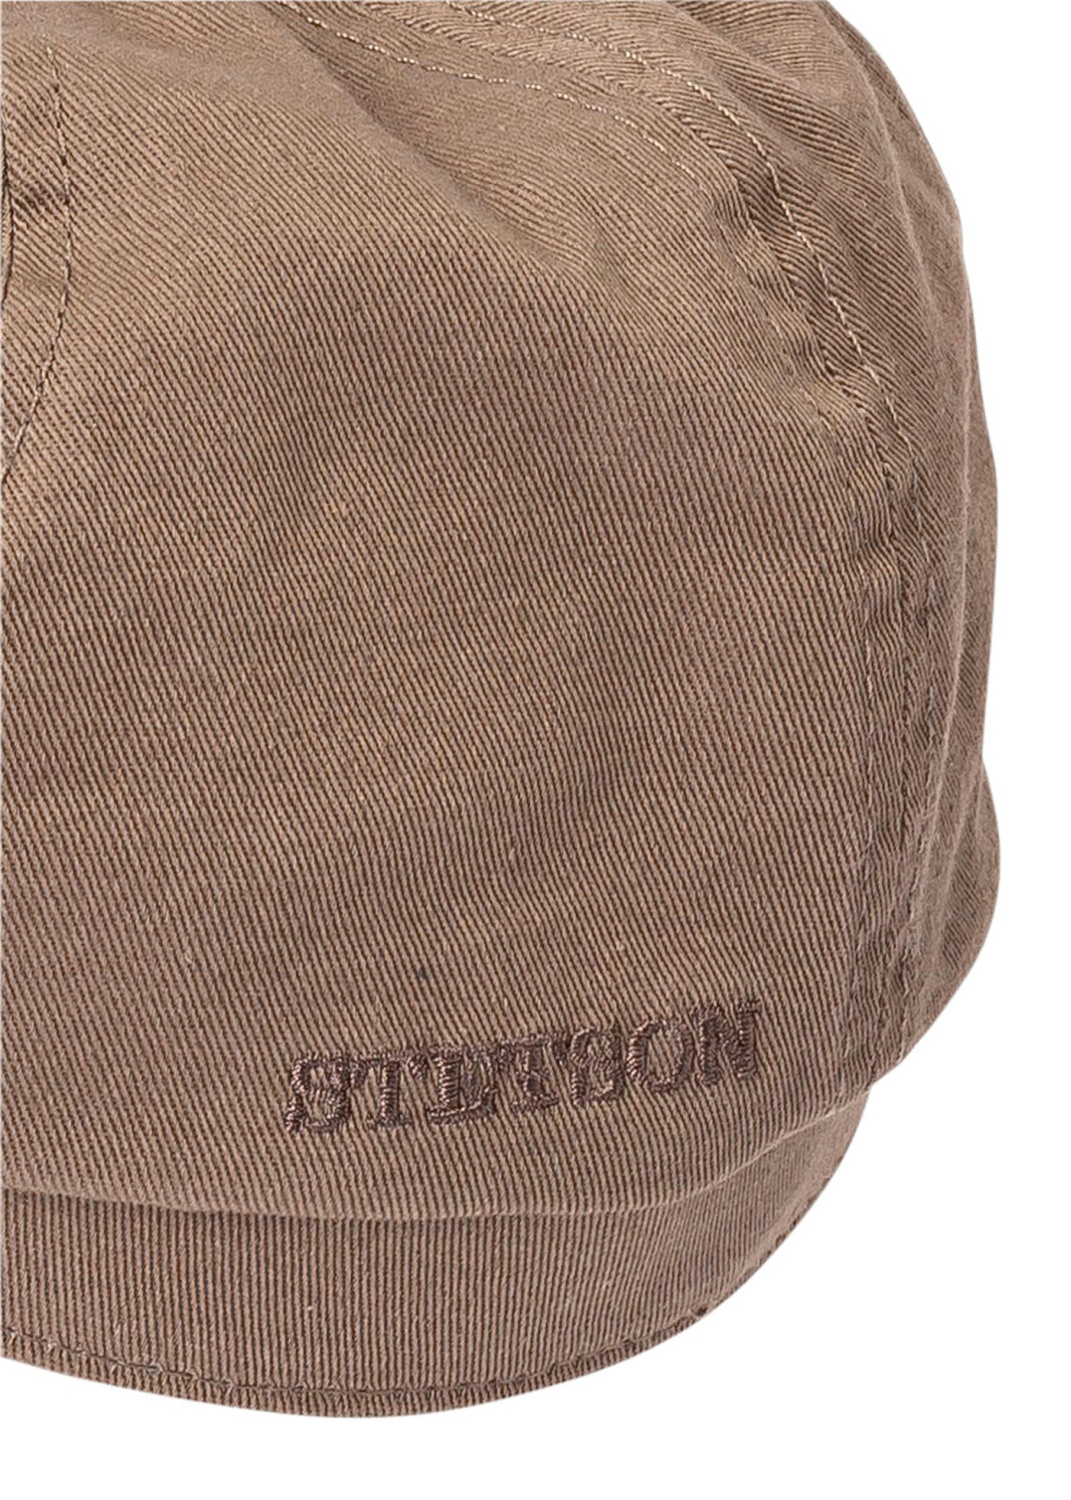 6-Panel Cap Cotton Twill image number 1